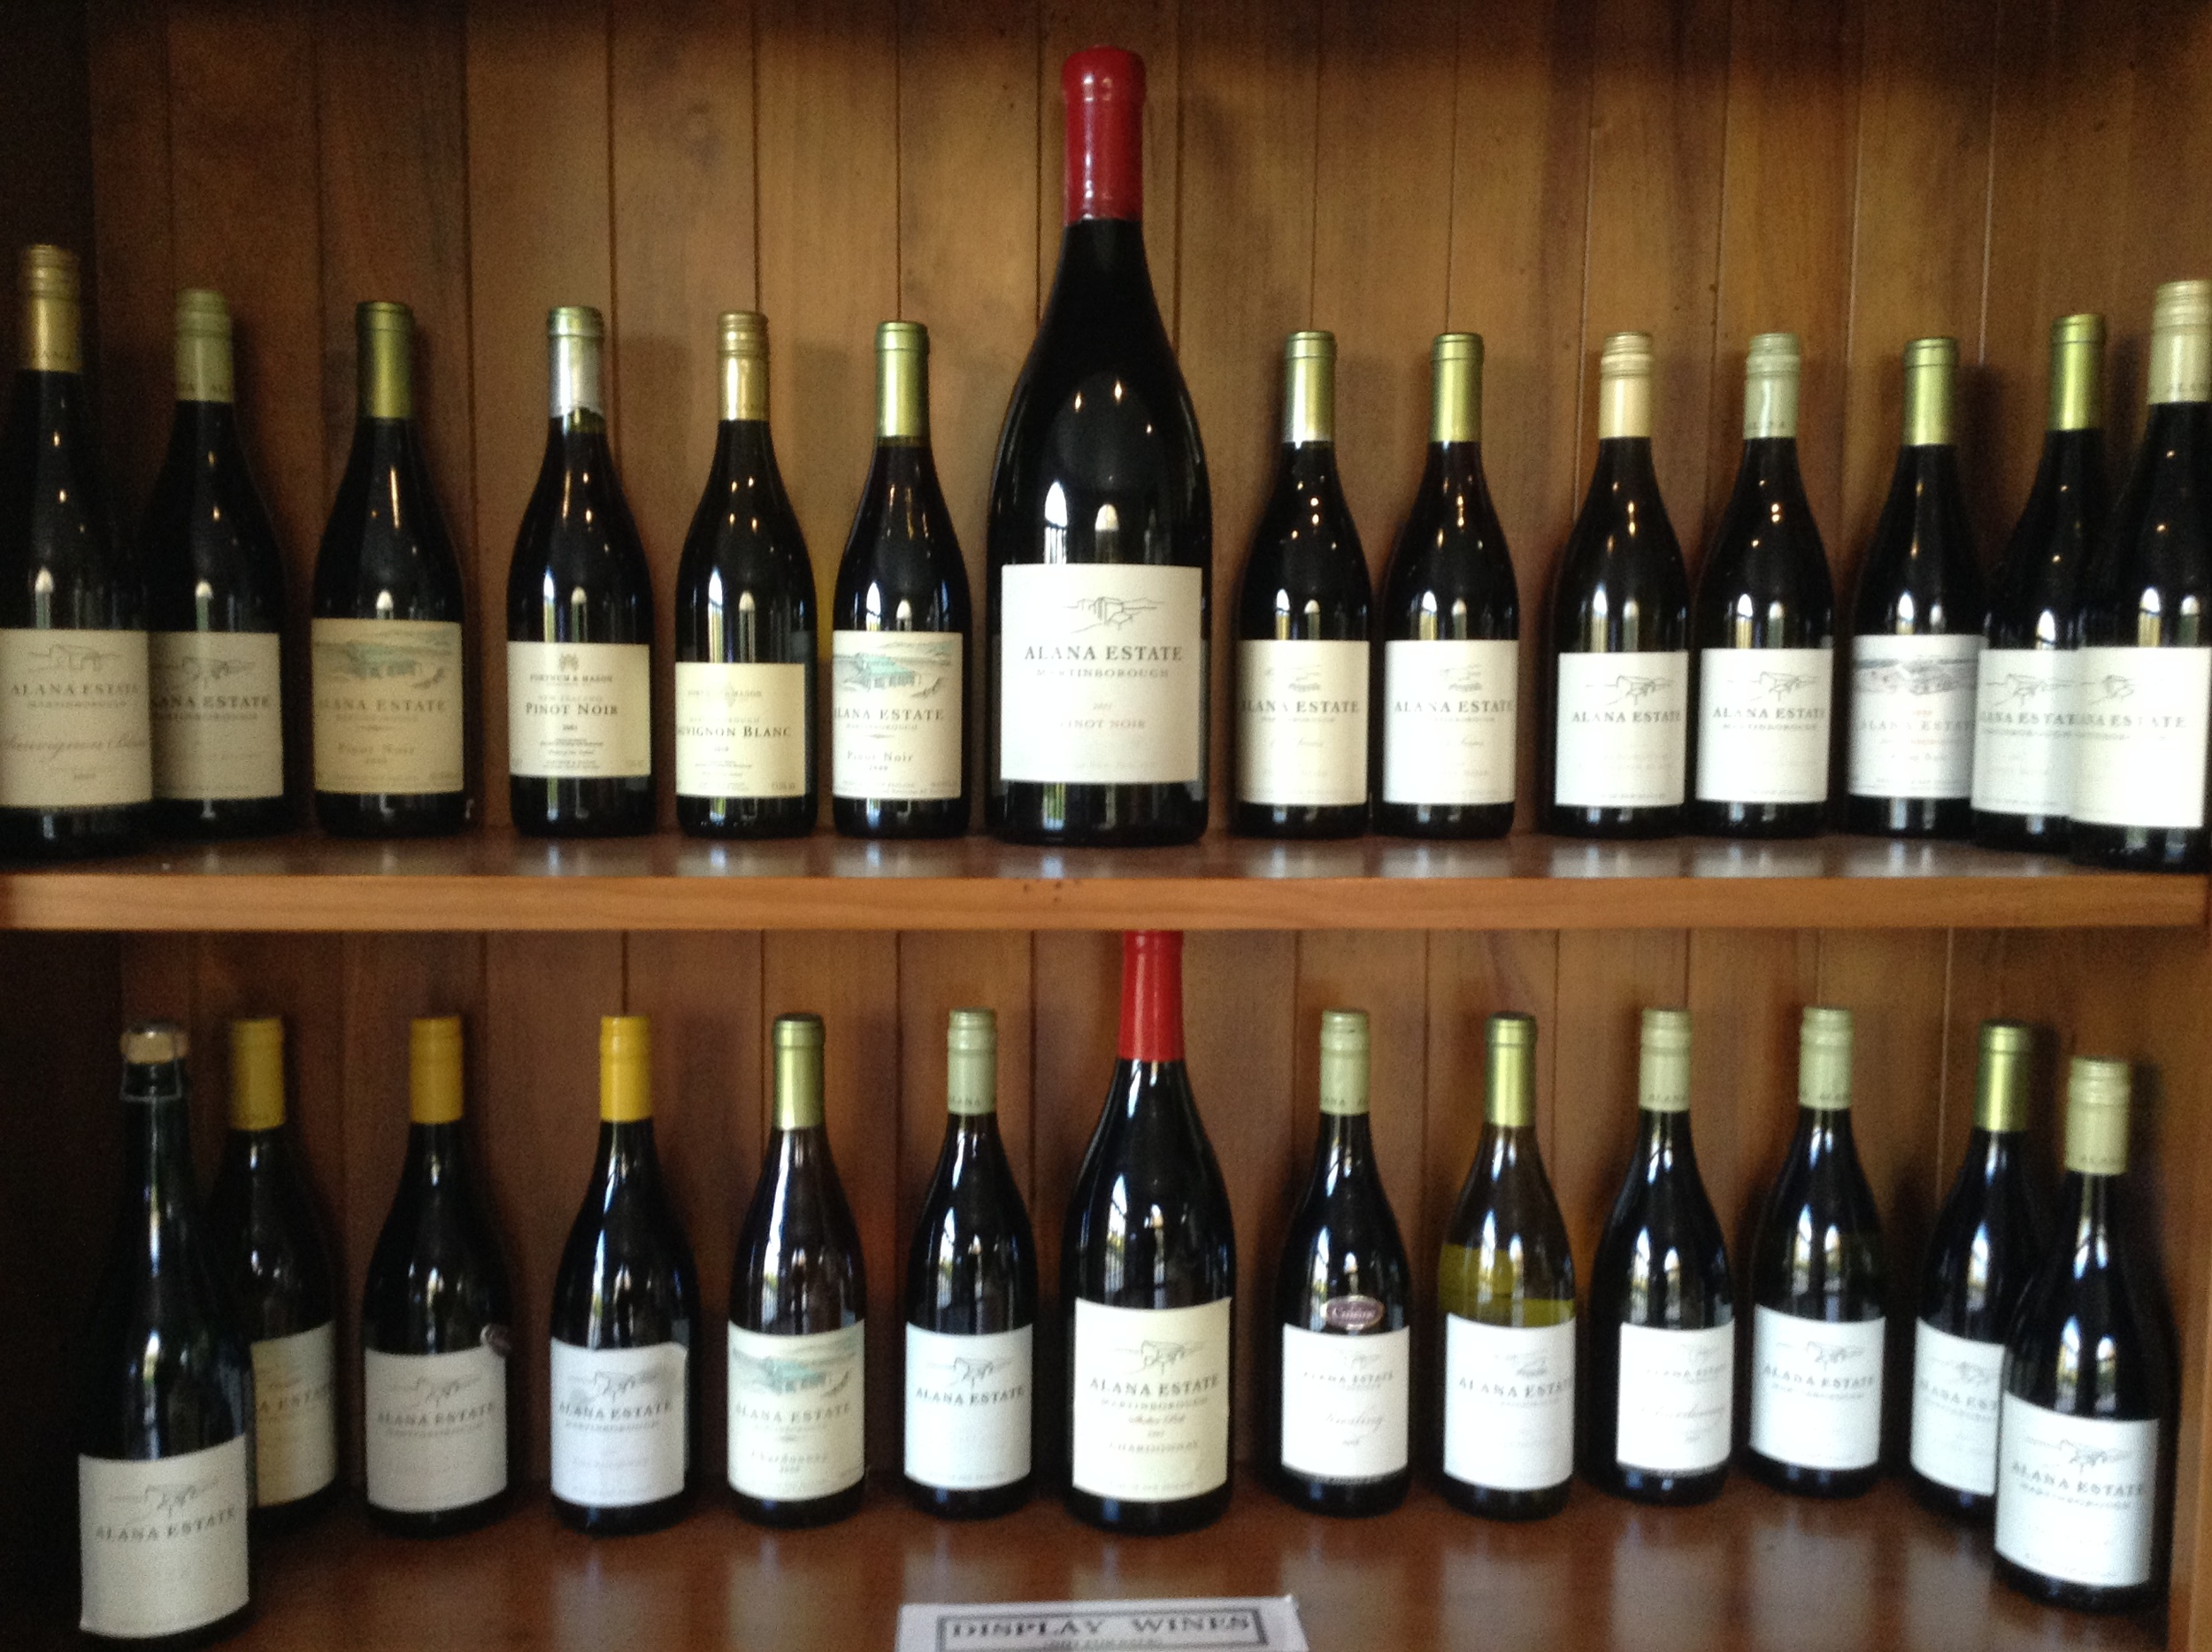 A lovely display in the cellar door of previous Alana Estate wines.